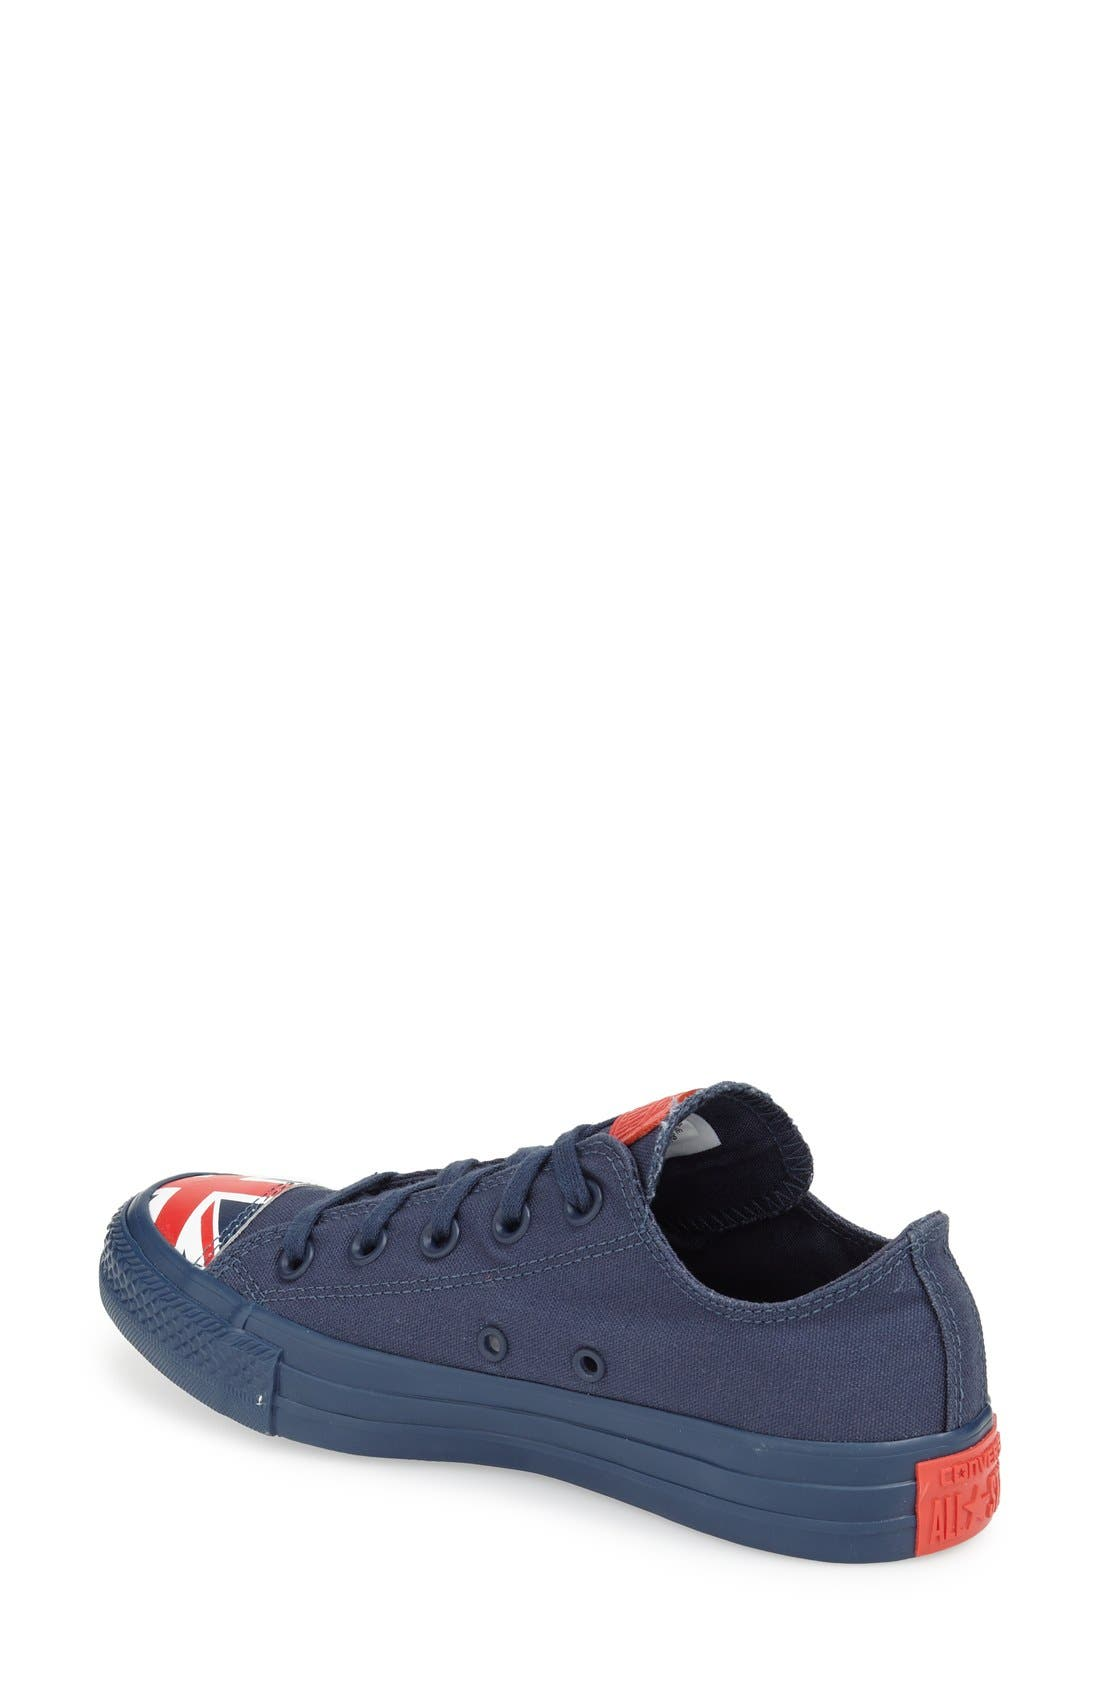 Alternate Image 2  - Converse Chuck Taylor® All Star® 'Ox - Flag Toe' Low Top Sneaker (Women)